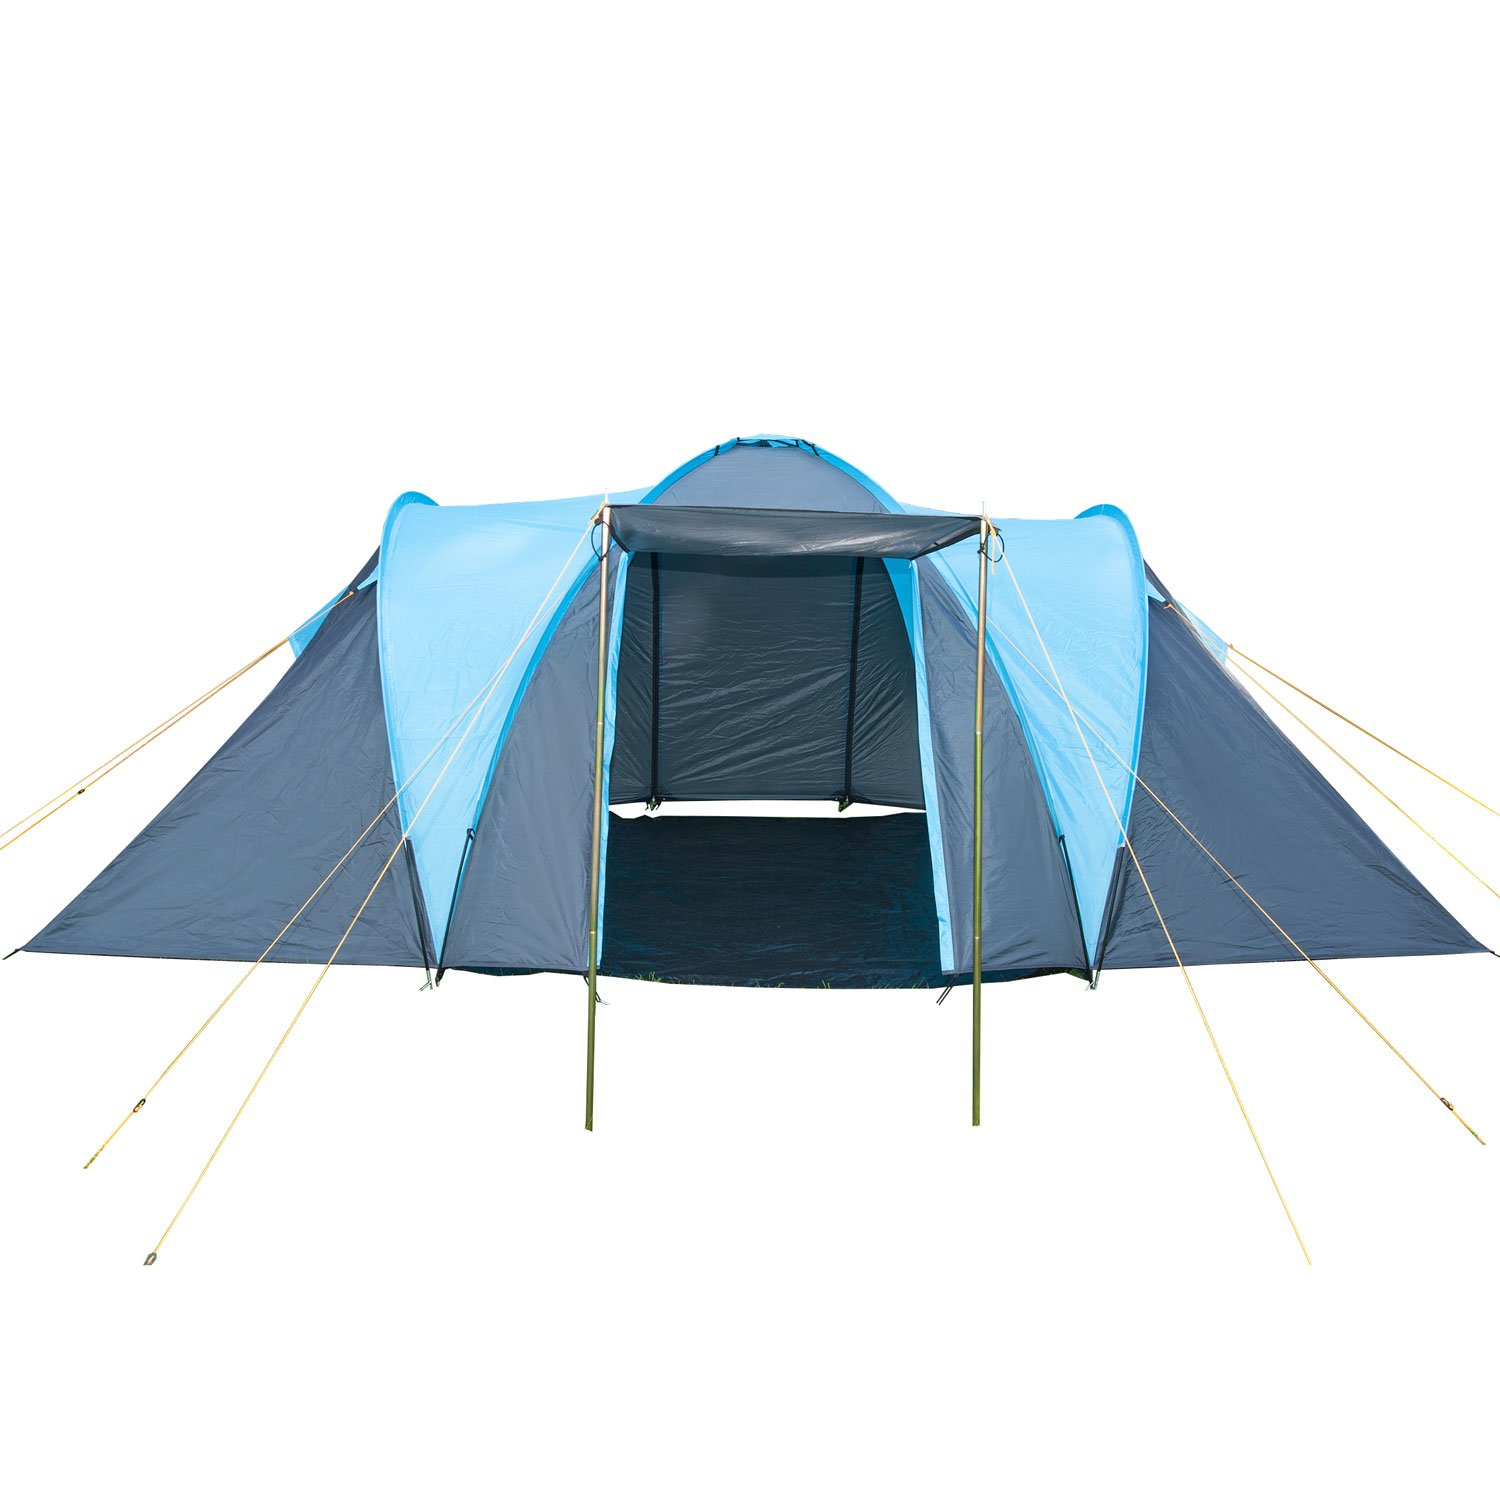 Skandika Hammerfest Family Dome Tent with 2 Sleeping Cabins 200 cm Peak Height Blue  sc 1 st  Amazon UK & Kingfisher Unisex 2 Bedroom Camping Tent Blue 4 Persons: Amazon ...